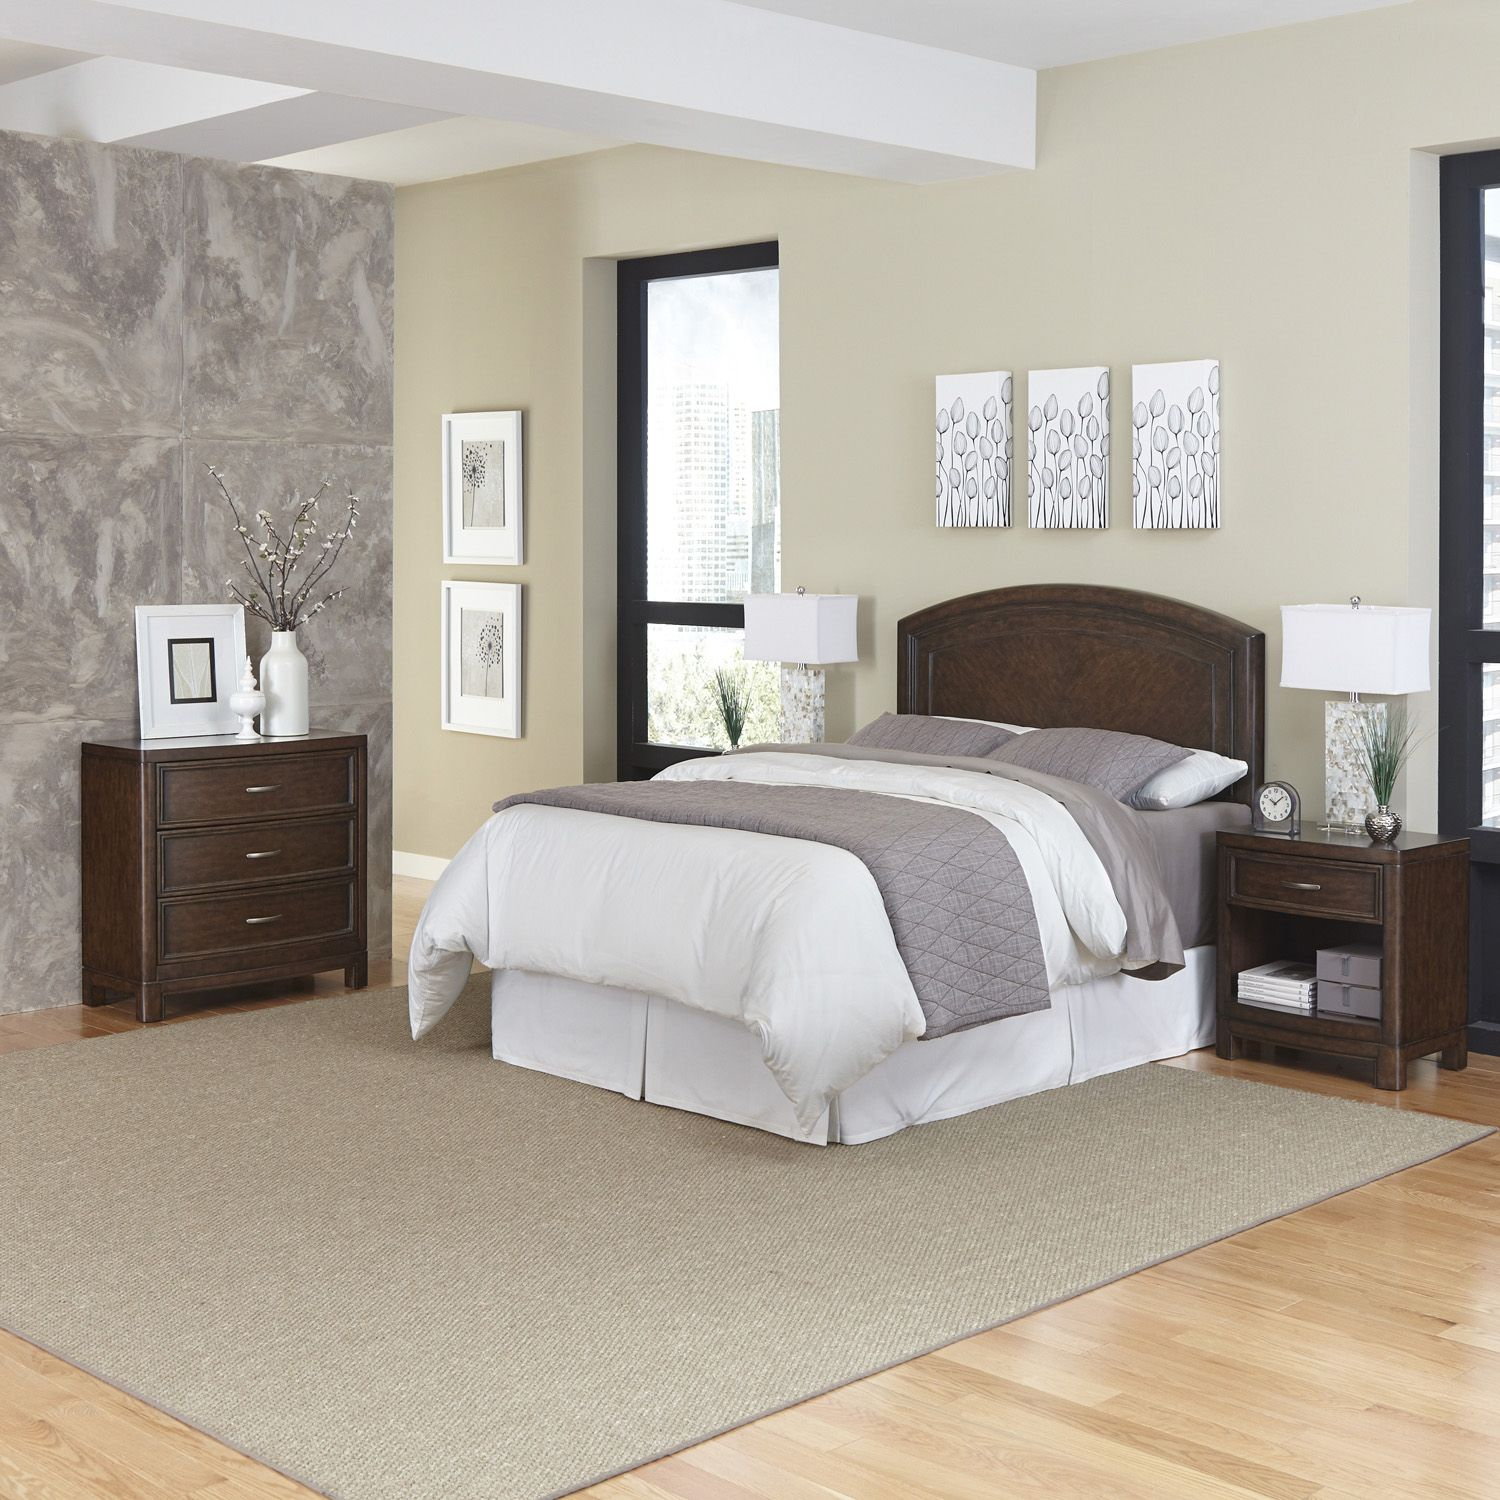 Best Home Styles Crescent Hill piece Bedroom Set